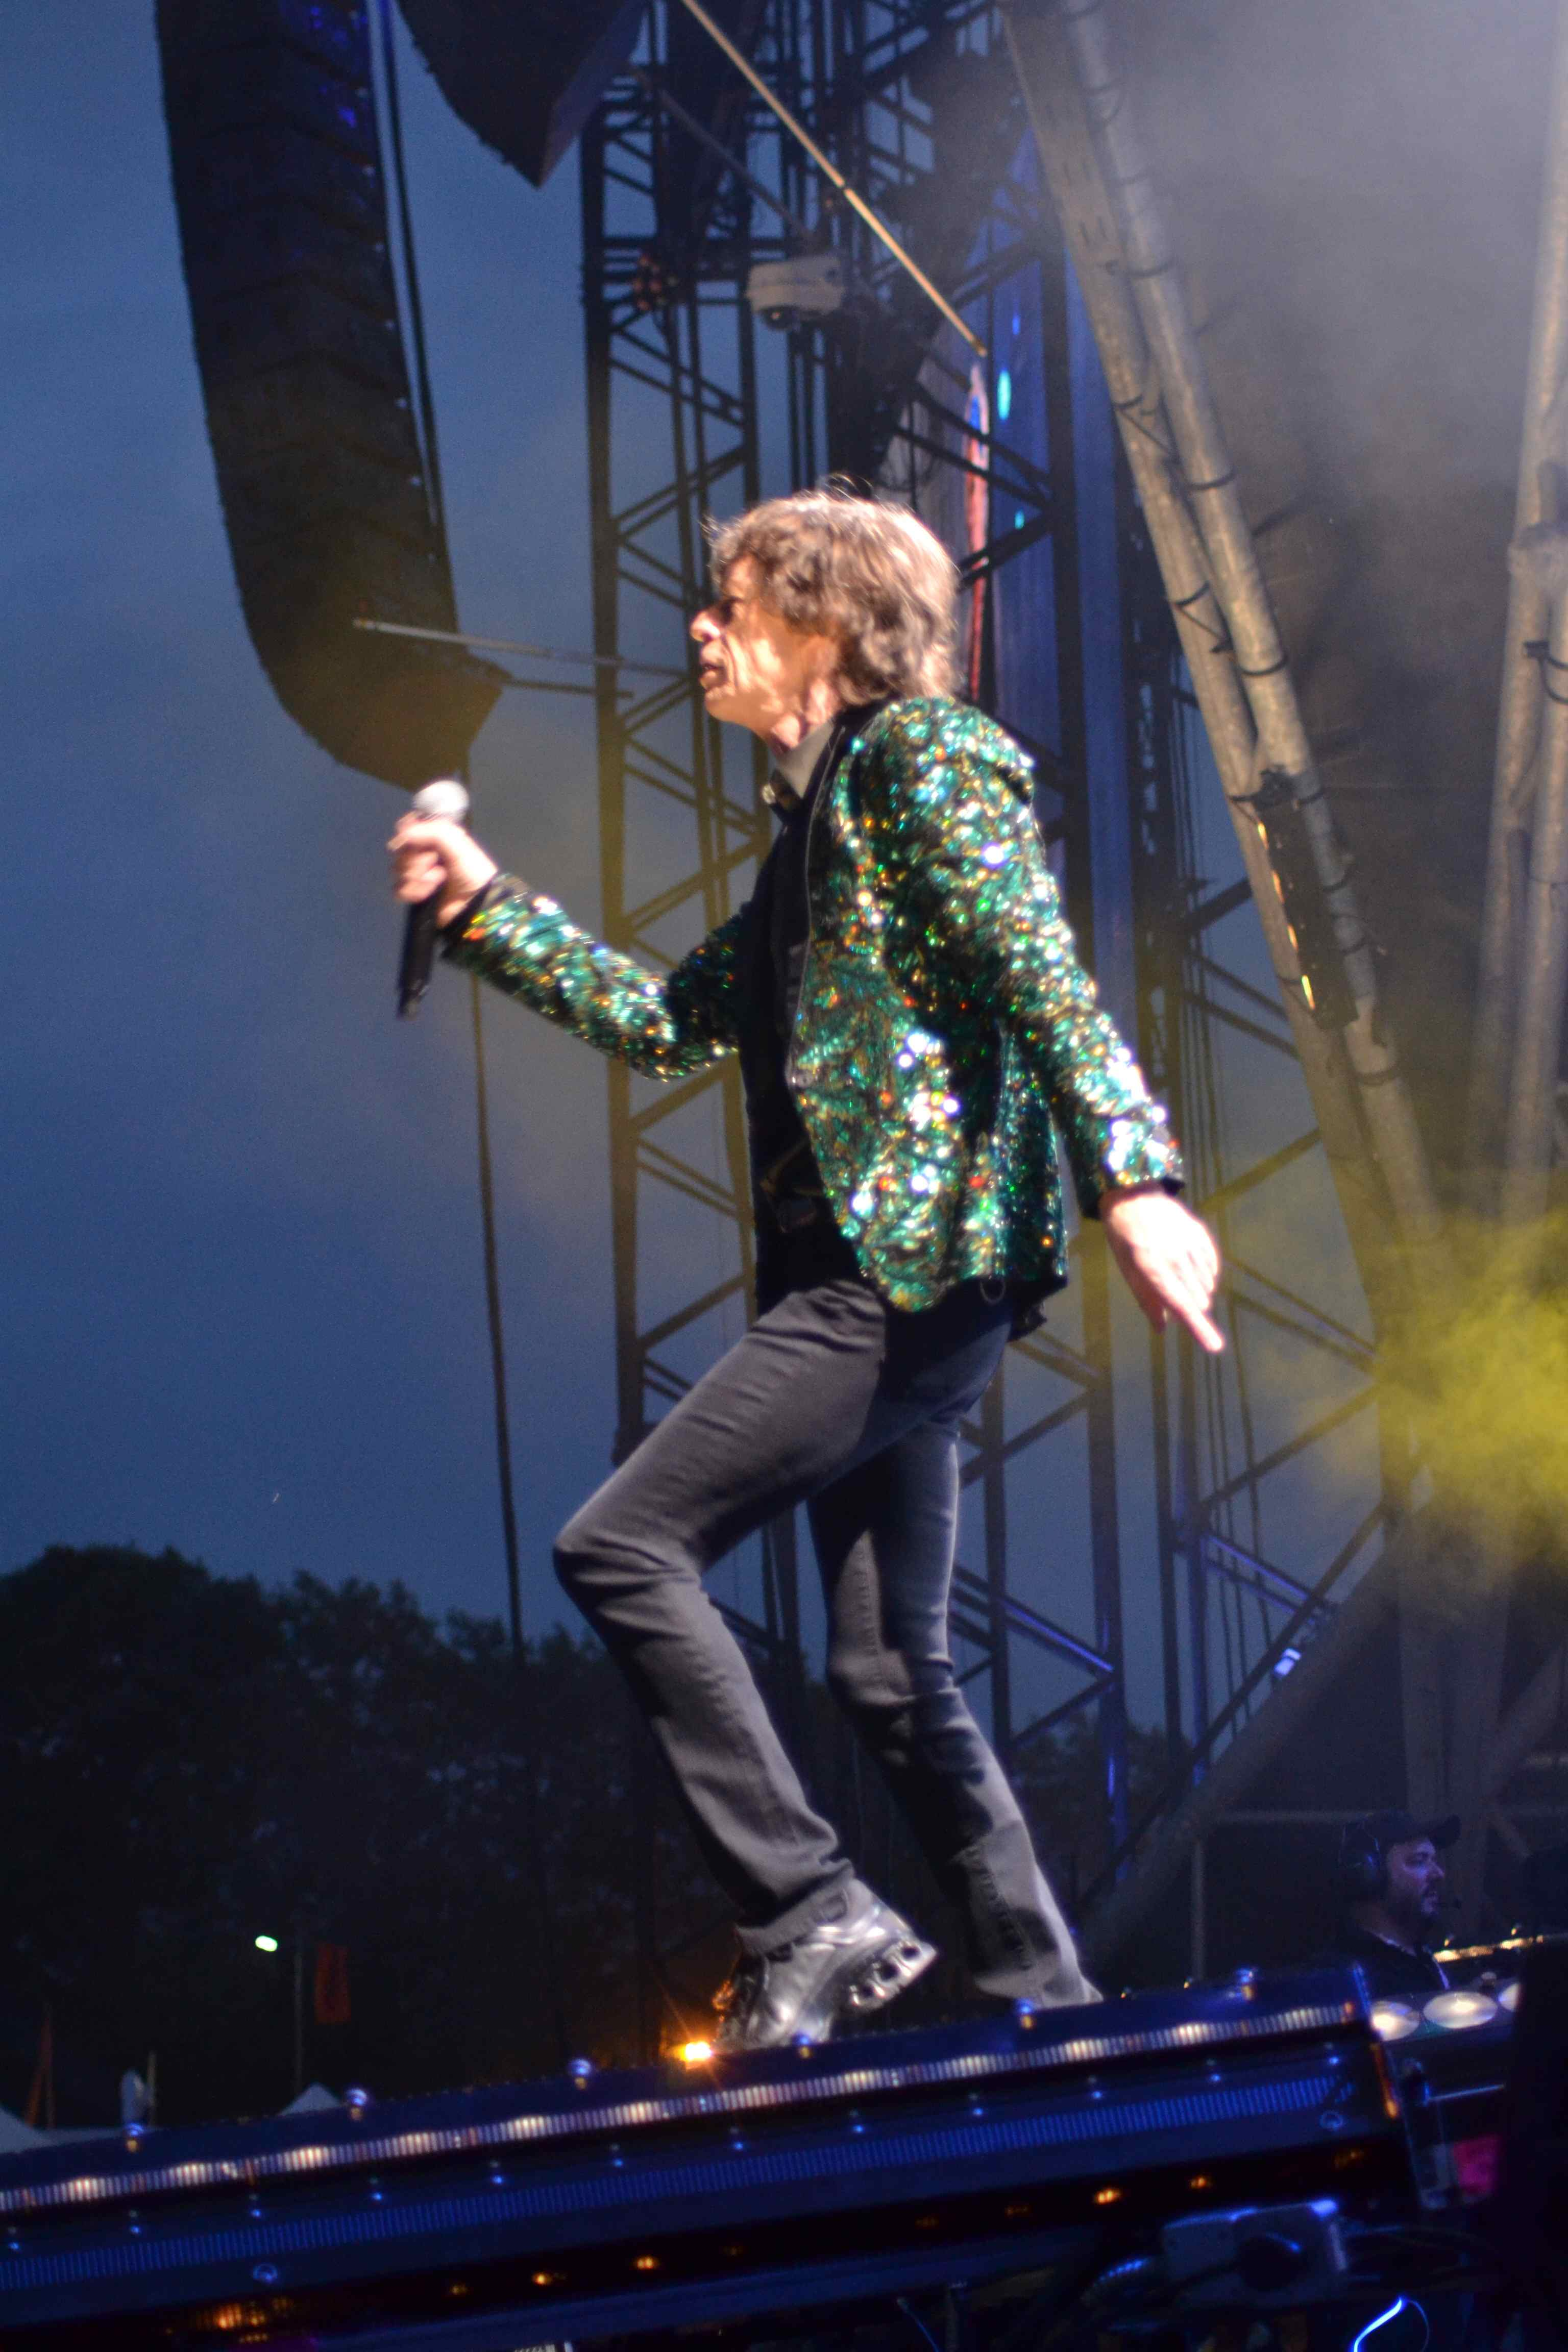 As the frontman of the Rolling Stones, Mick Jagger is one of the world's greatest rock stars